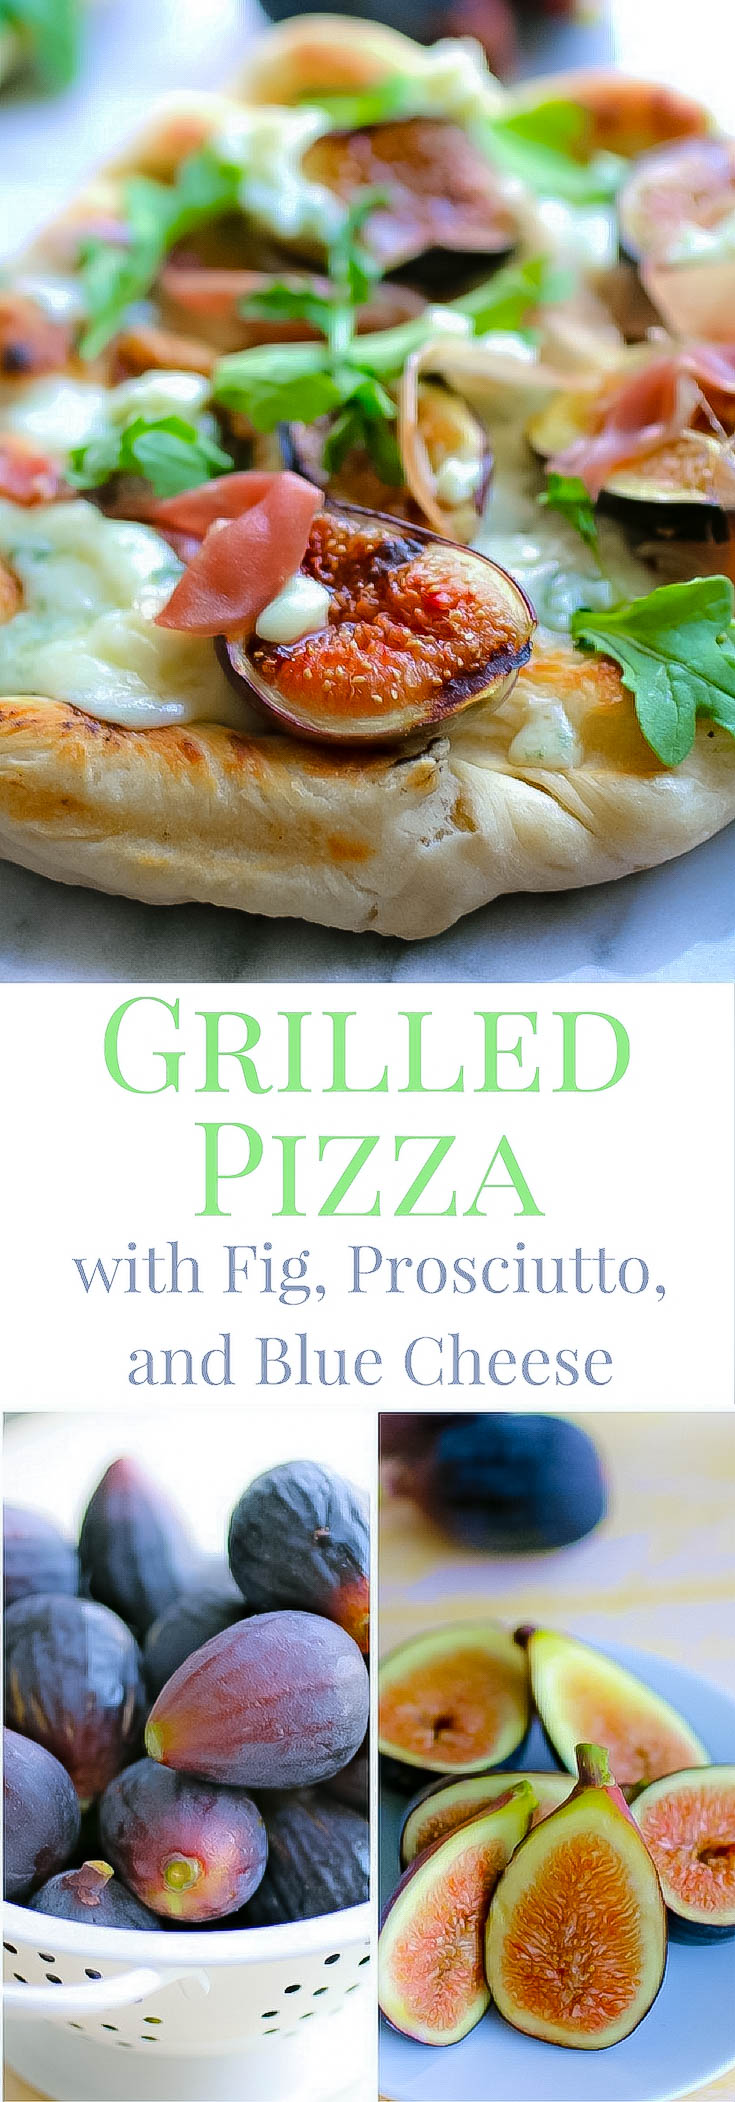 Grilled Pizza with Fig, Prosciutto, and Blue Cheese is a fabulous pizza you'll love! Make this Grilled Pizza with Fig, Prosciutto, and Blue Cheese for dinner soon.